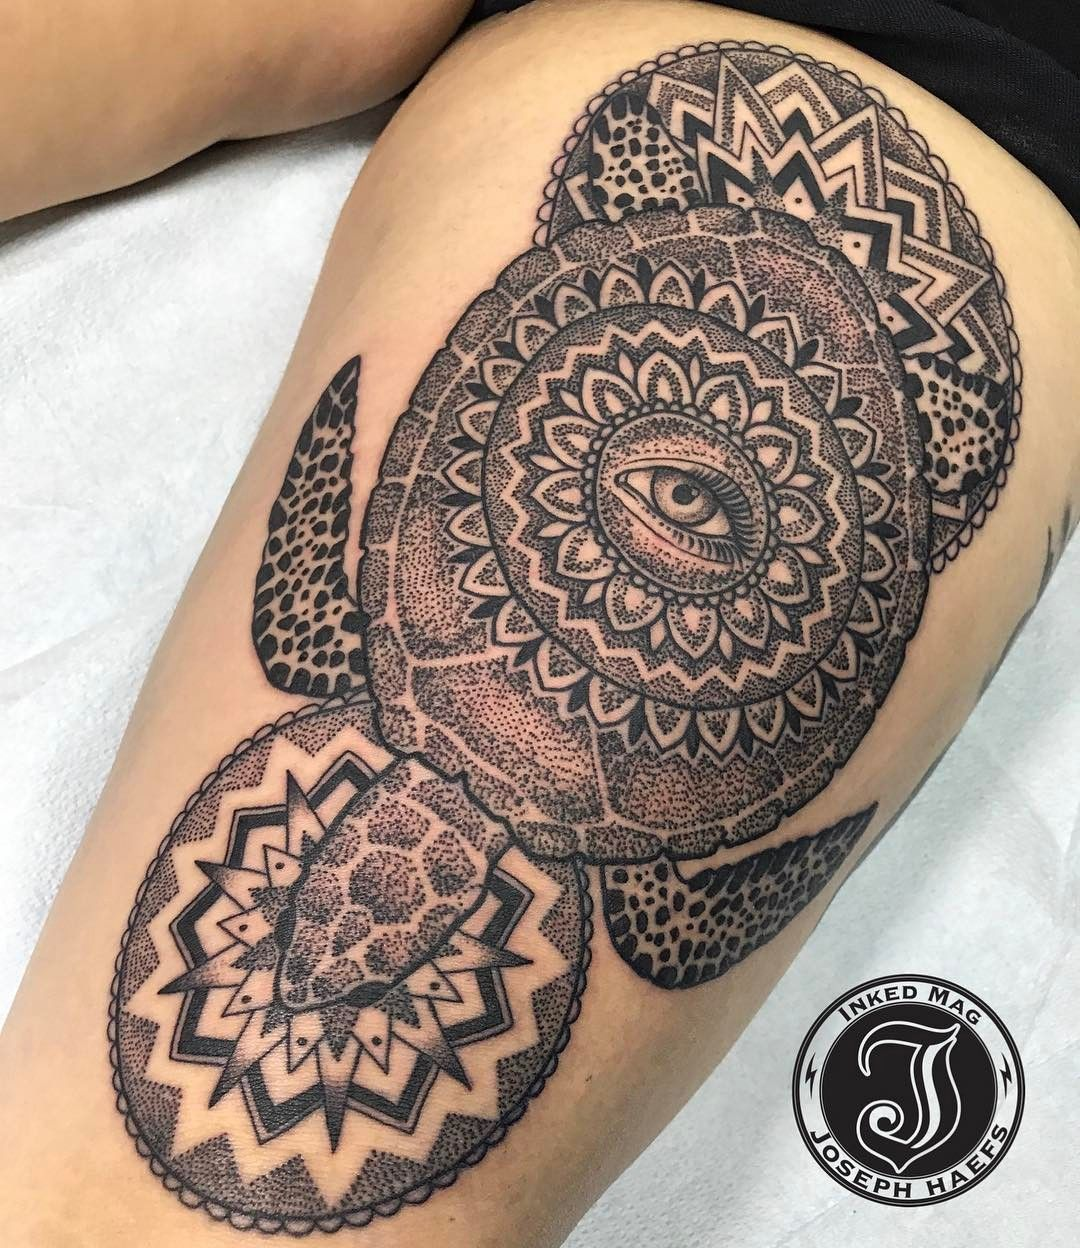 Tattoo Ideas Joe: Mandala Sea Turtle By Joseph Haefs Reverent Tattoo Las